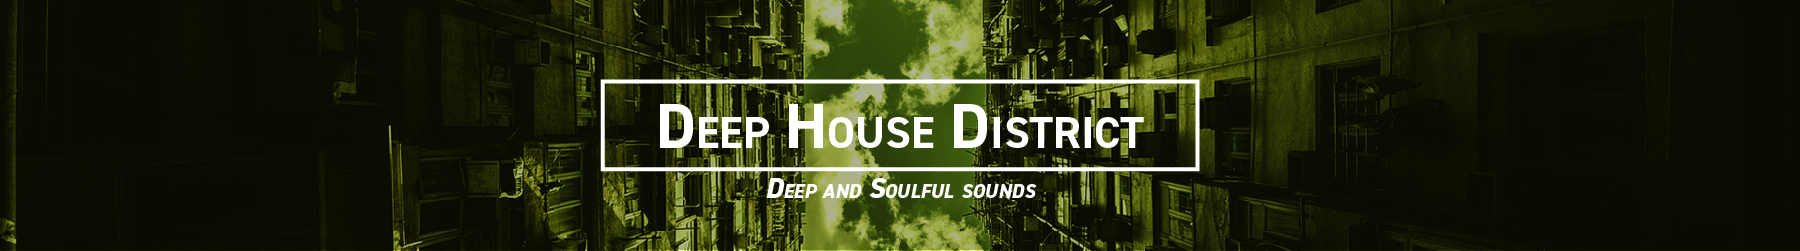 Deep House District